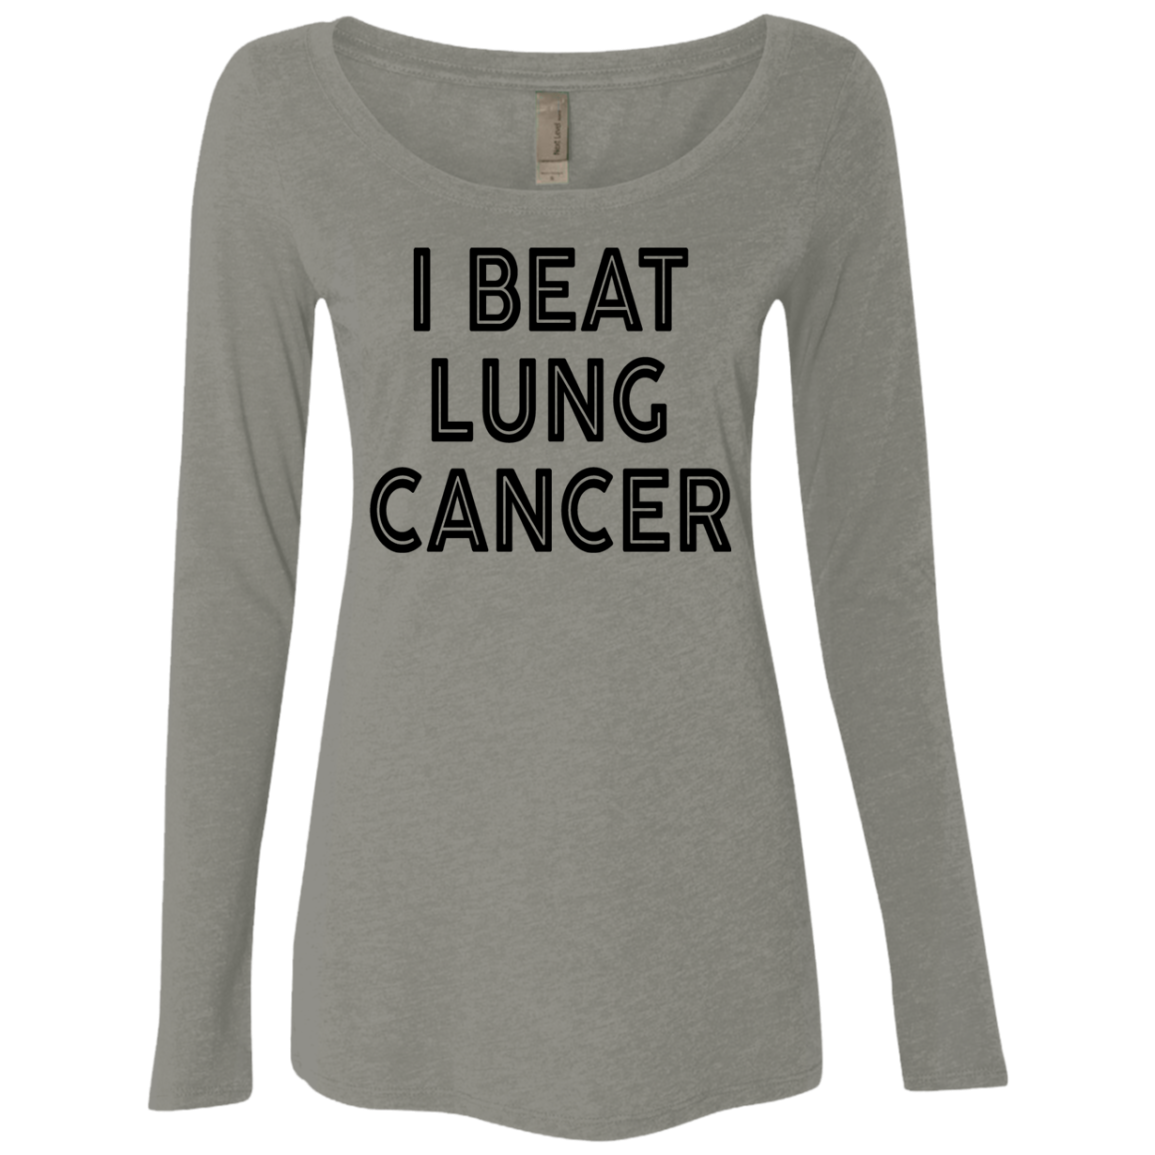 I Beat Lung Cancer Women's Long Sleeve Tee